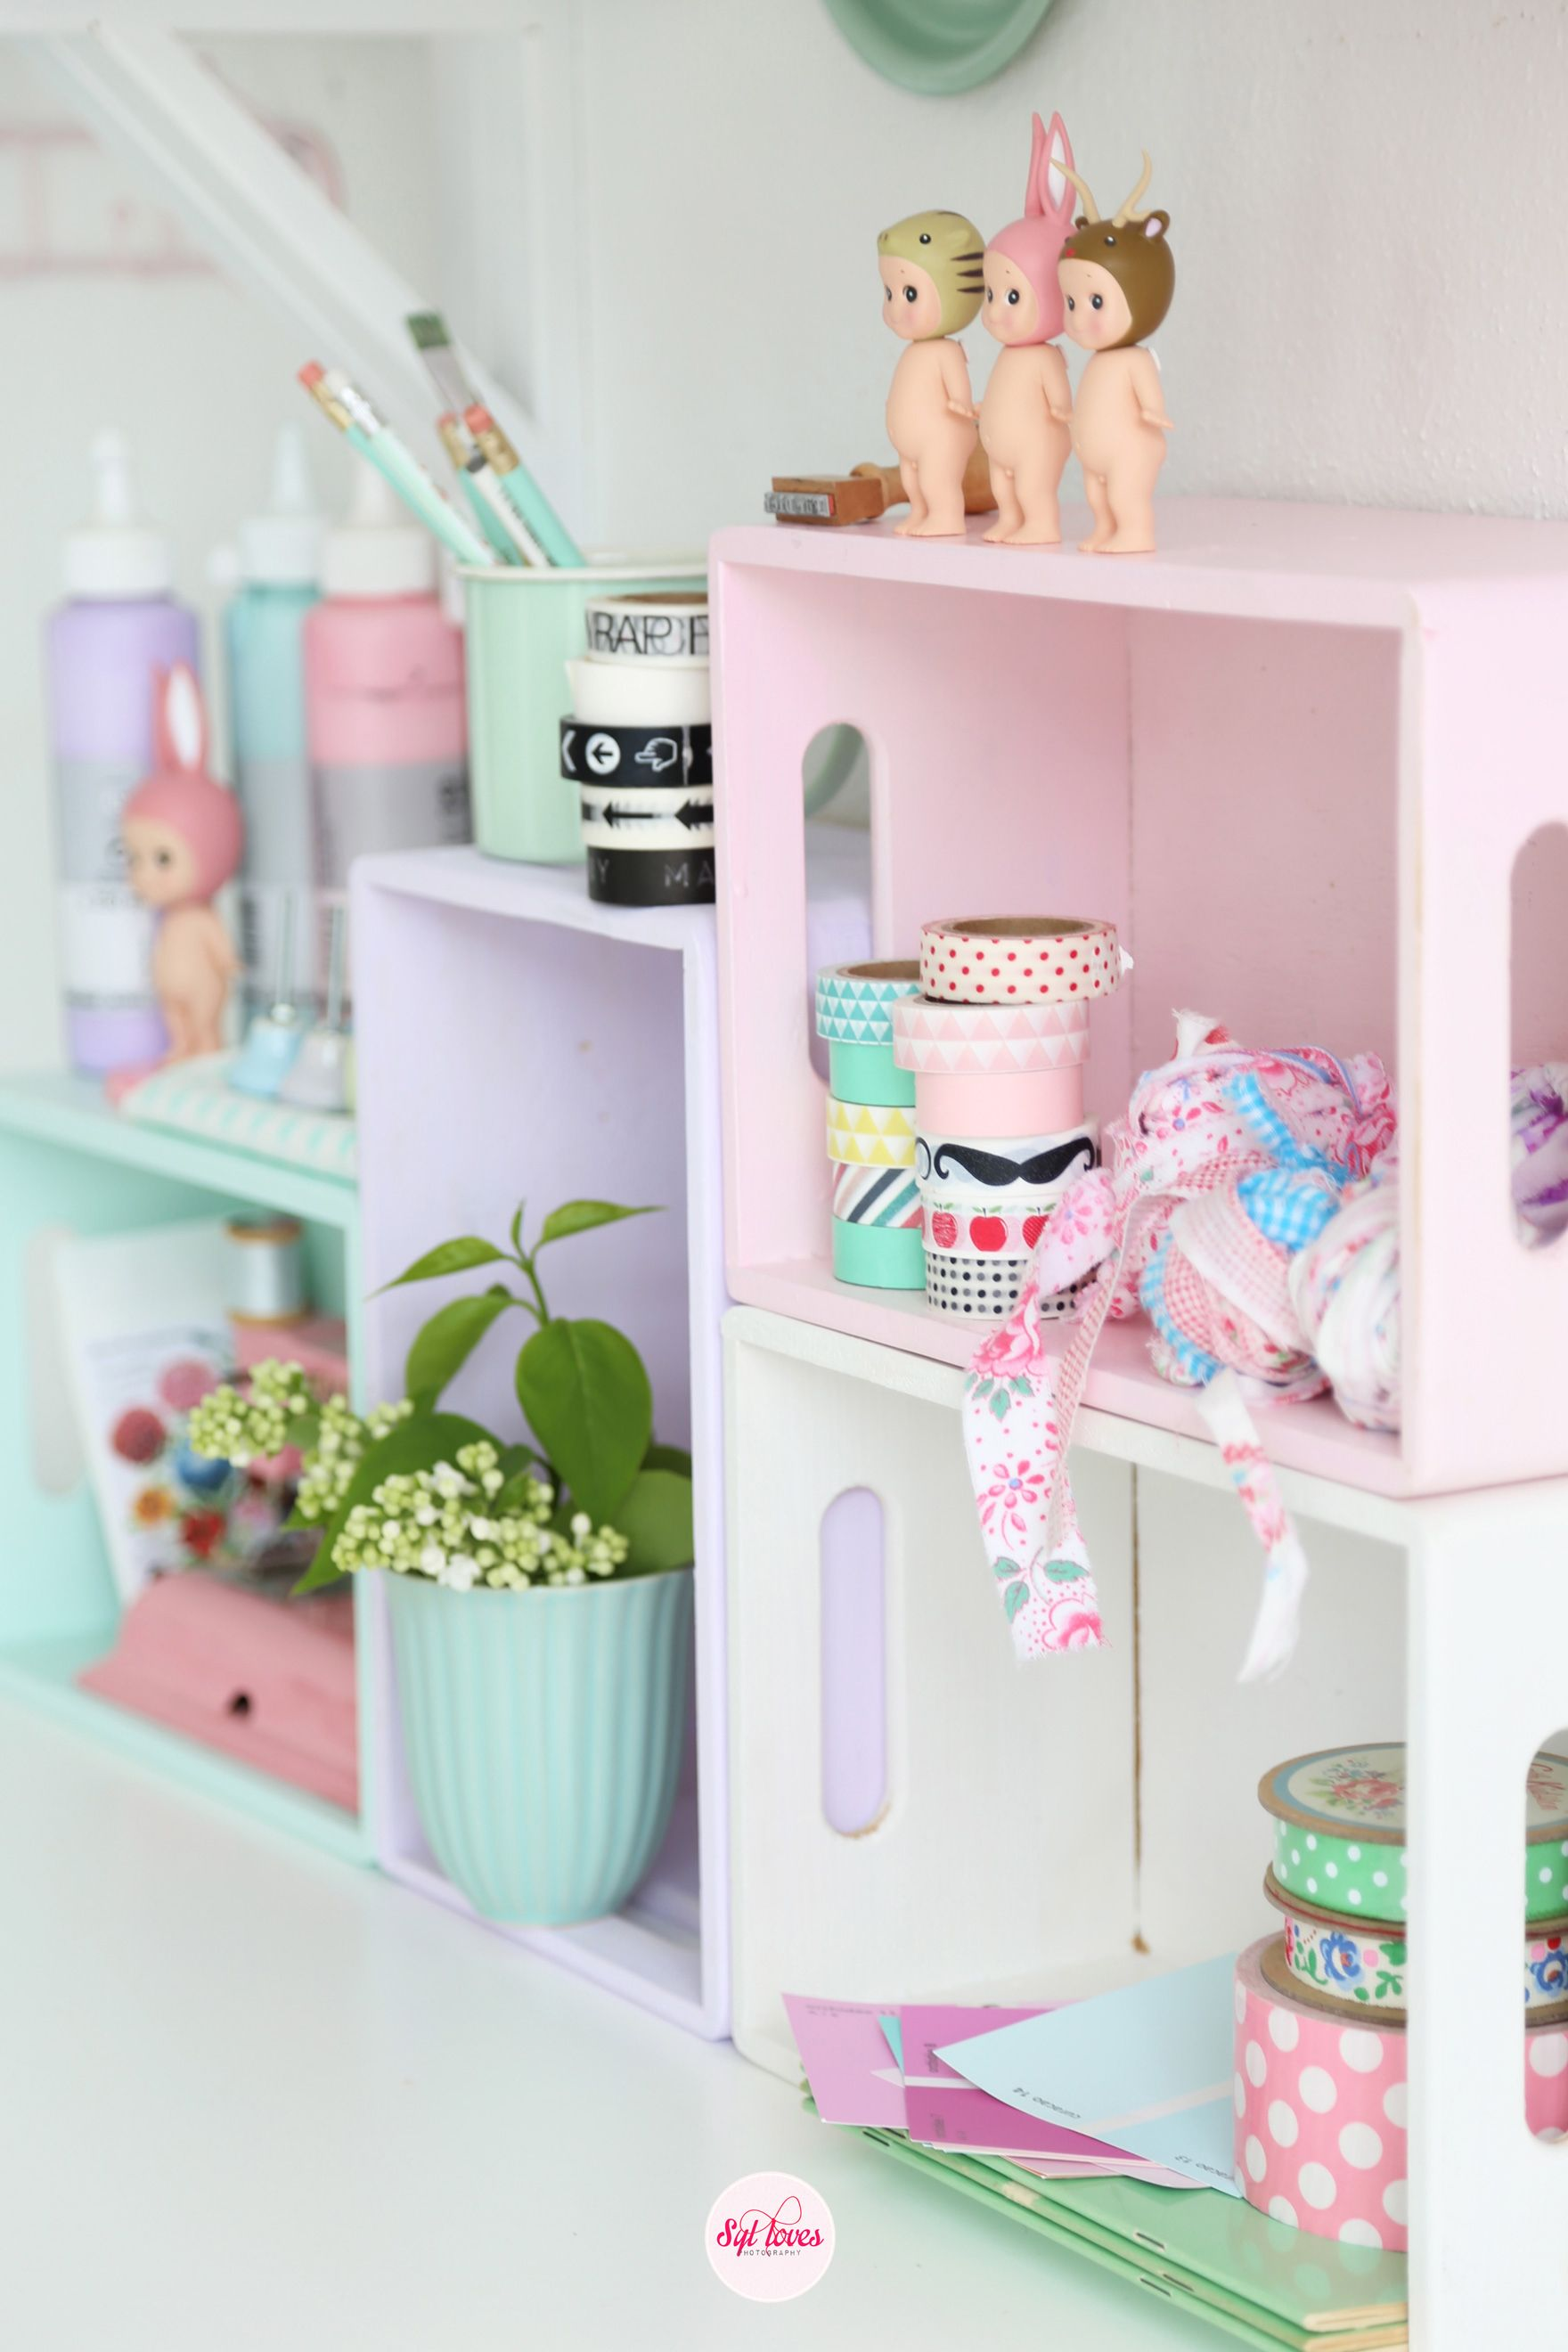 12 DIY Shelf Ideas for Kids' Rooms | Shelf ideas, Kids rooms and ...